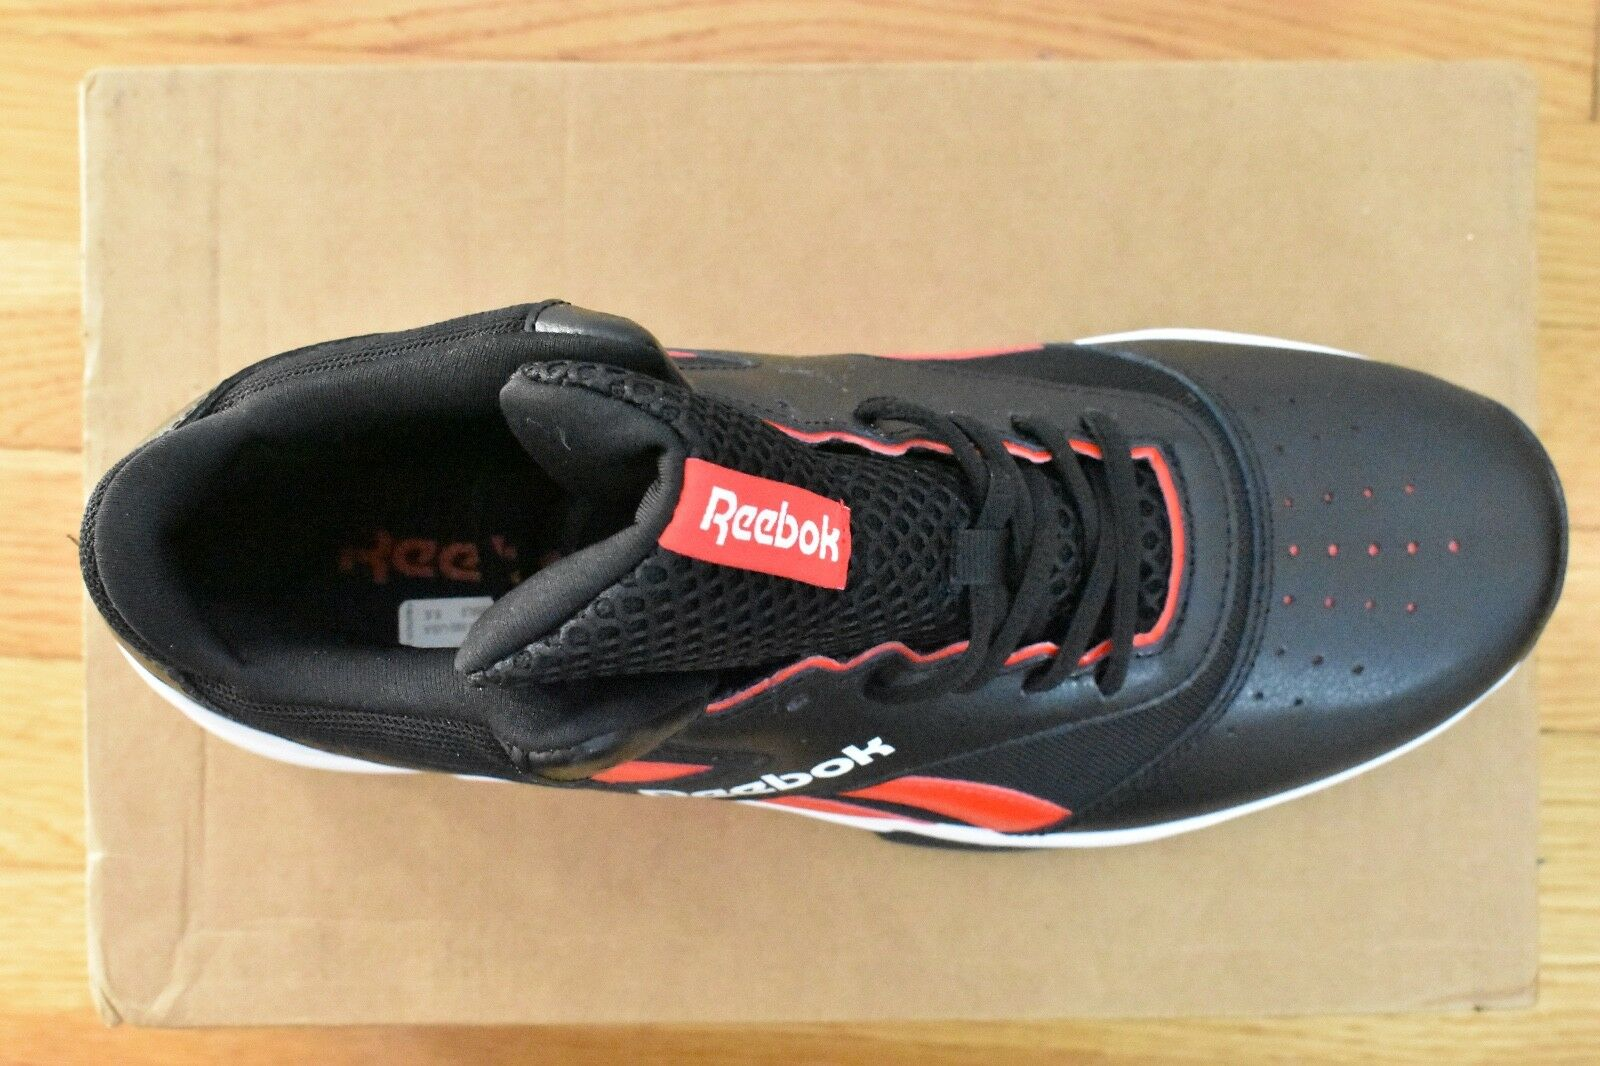 Reebok  Men  Shoes Sneakers Trainers #BD2924 Size 9.5 leather